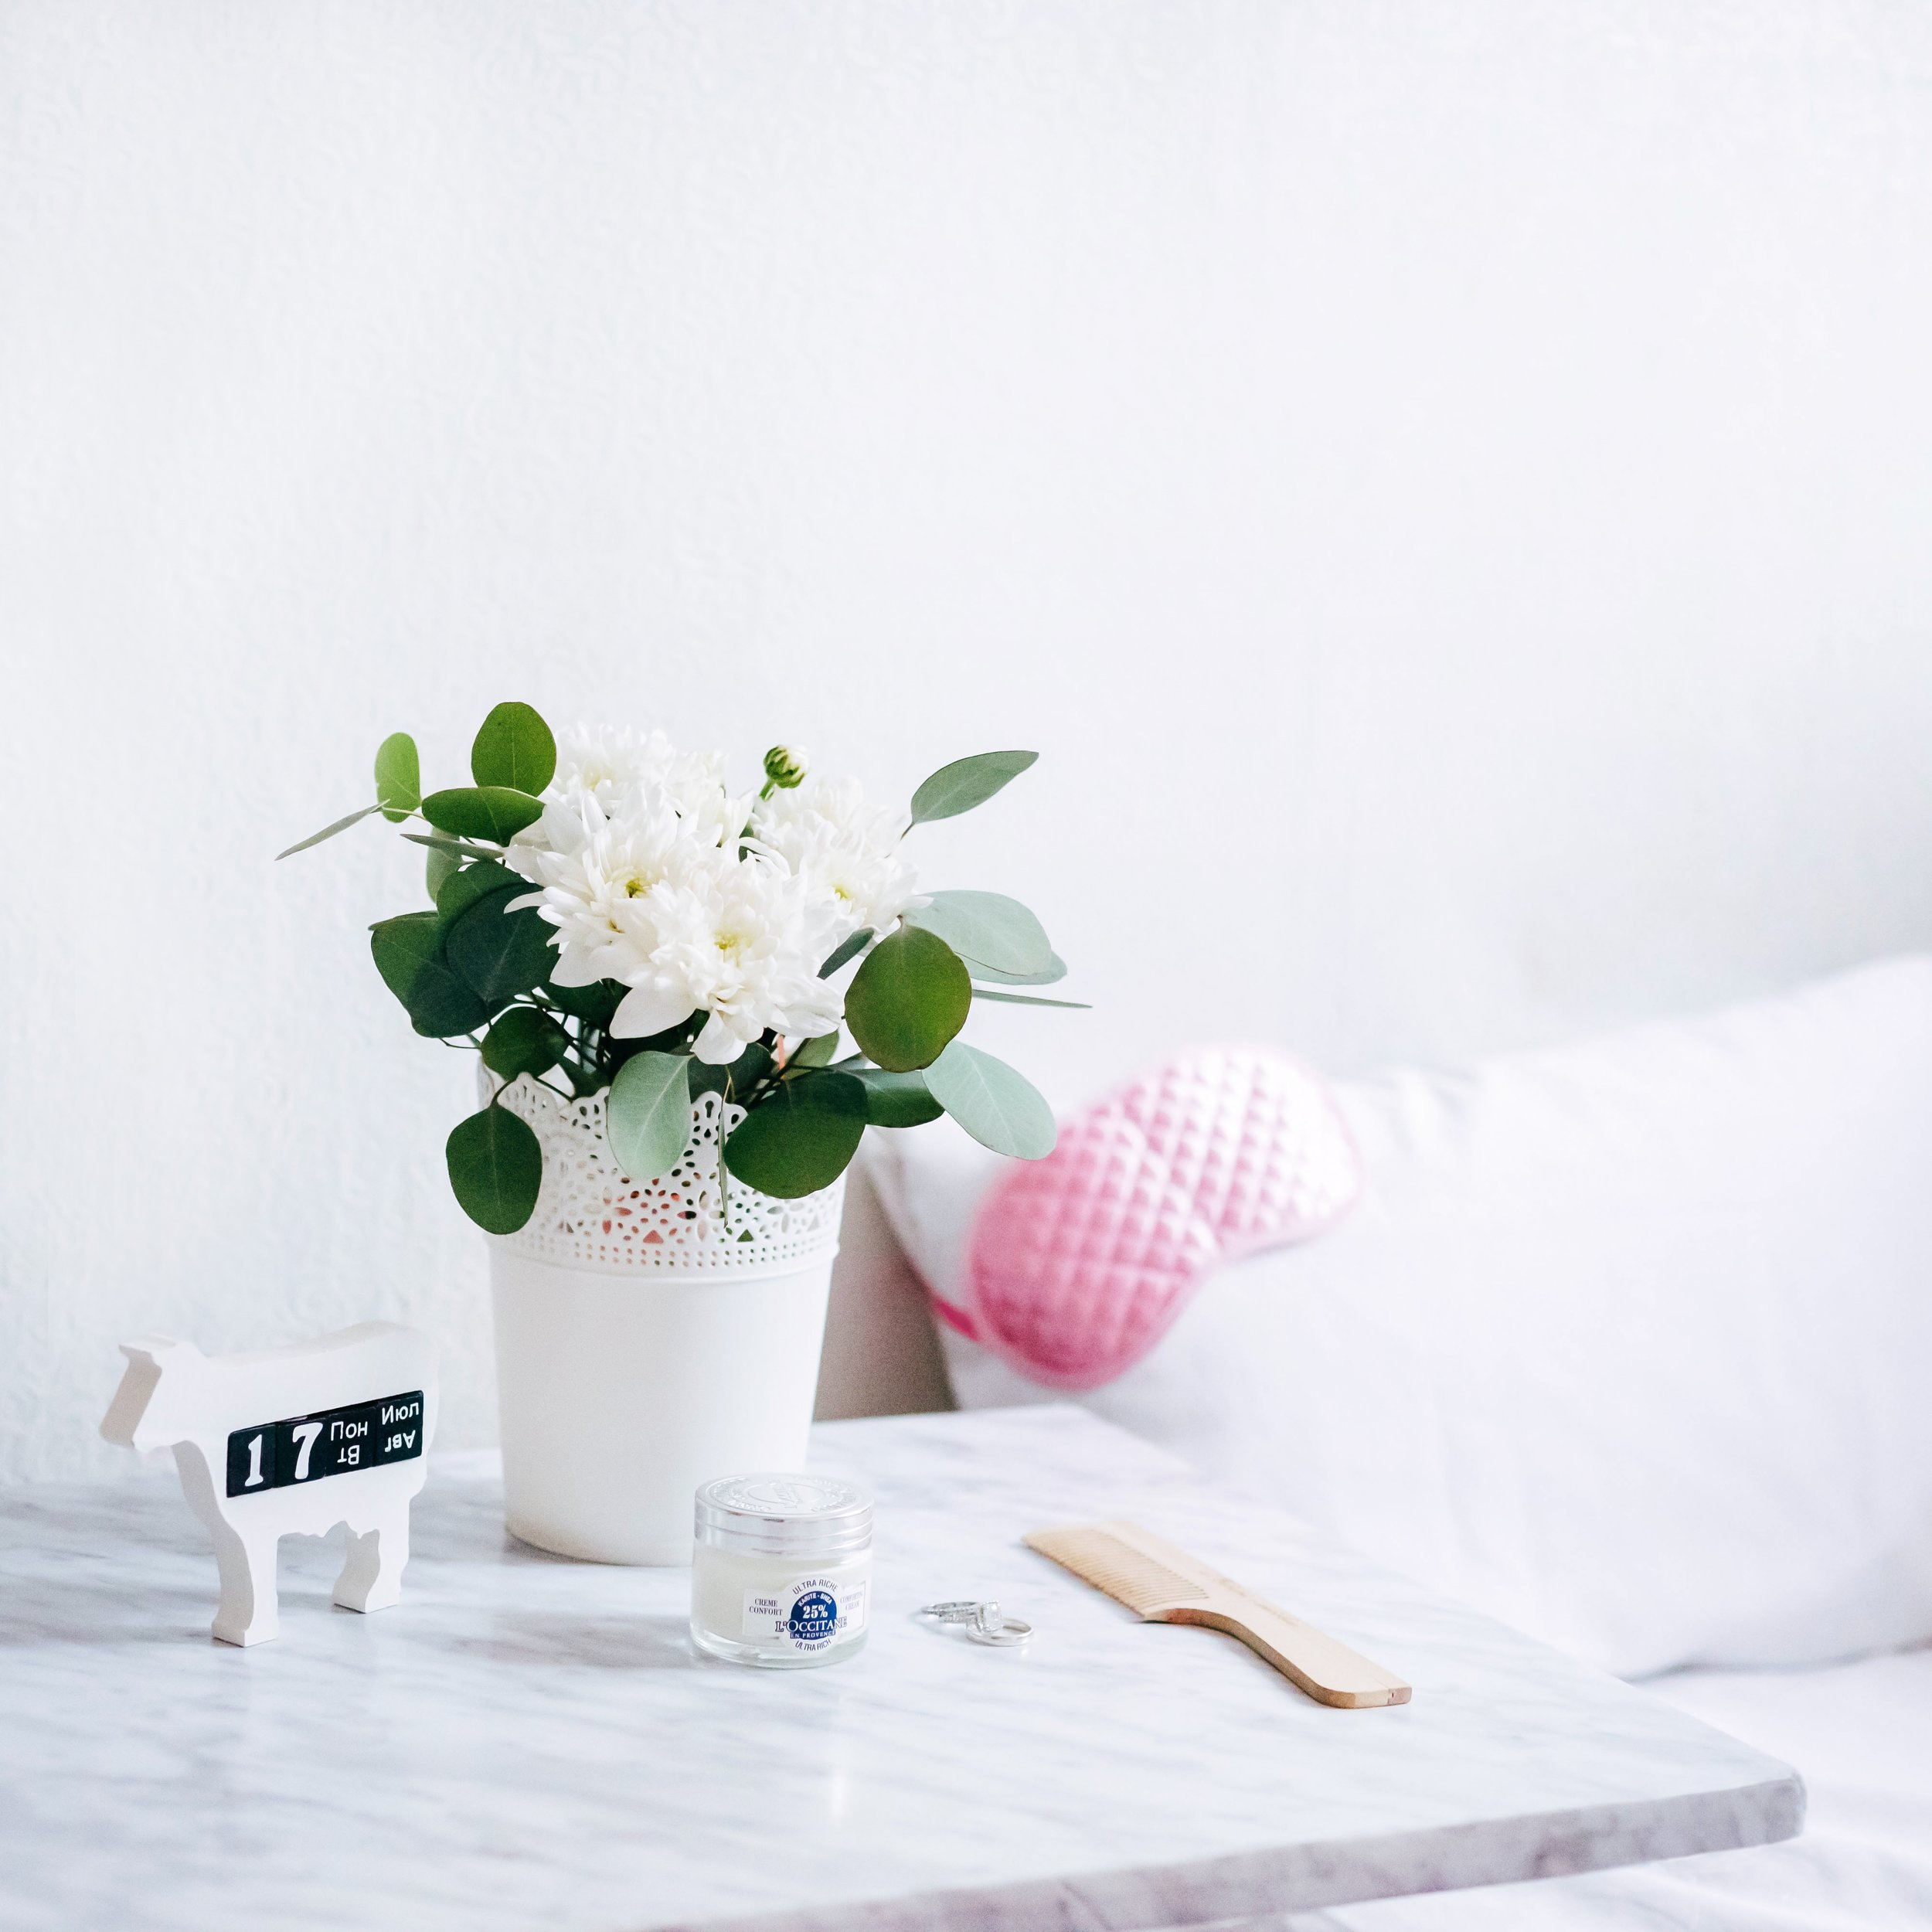 Making your bedroom cozy and comfortable and getting into a bedtime routine can aid in restful sleep.